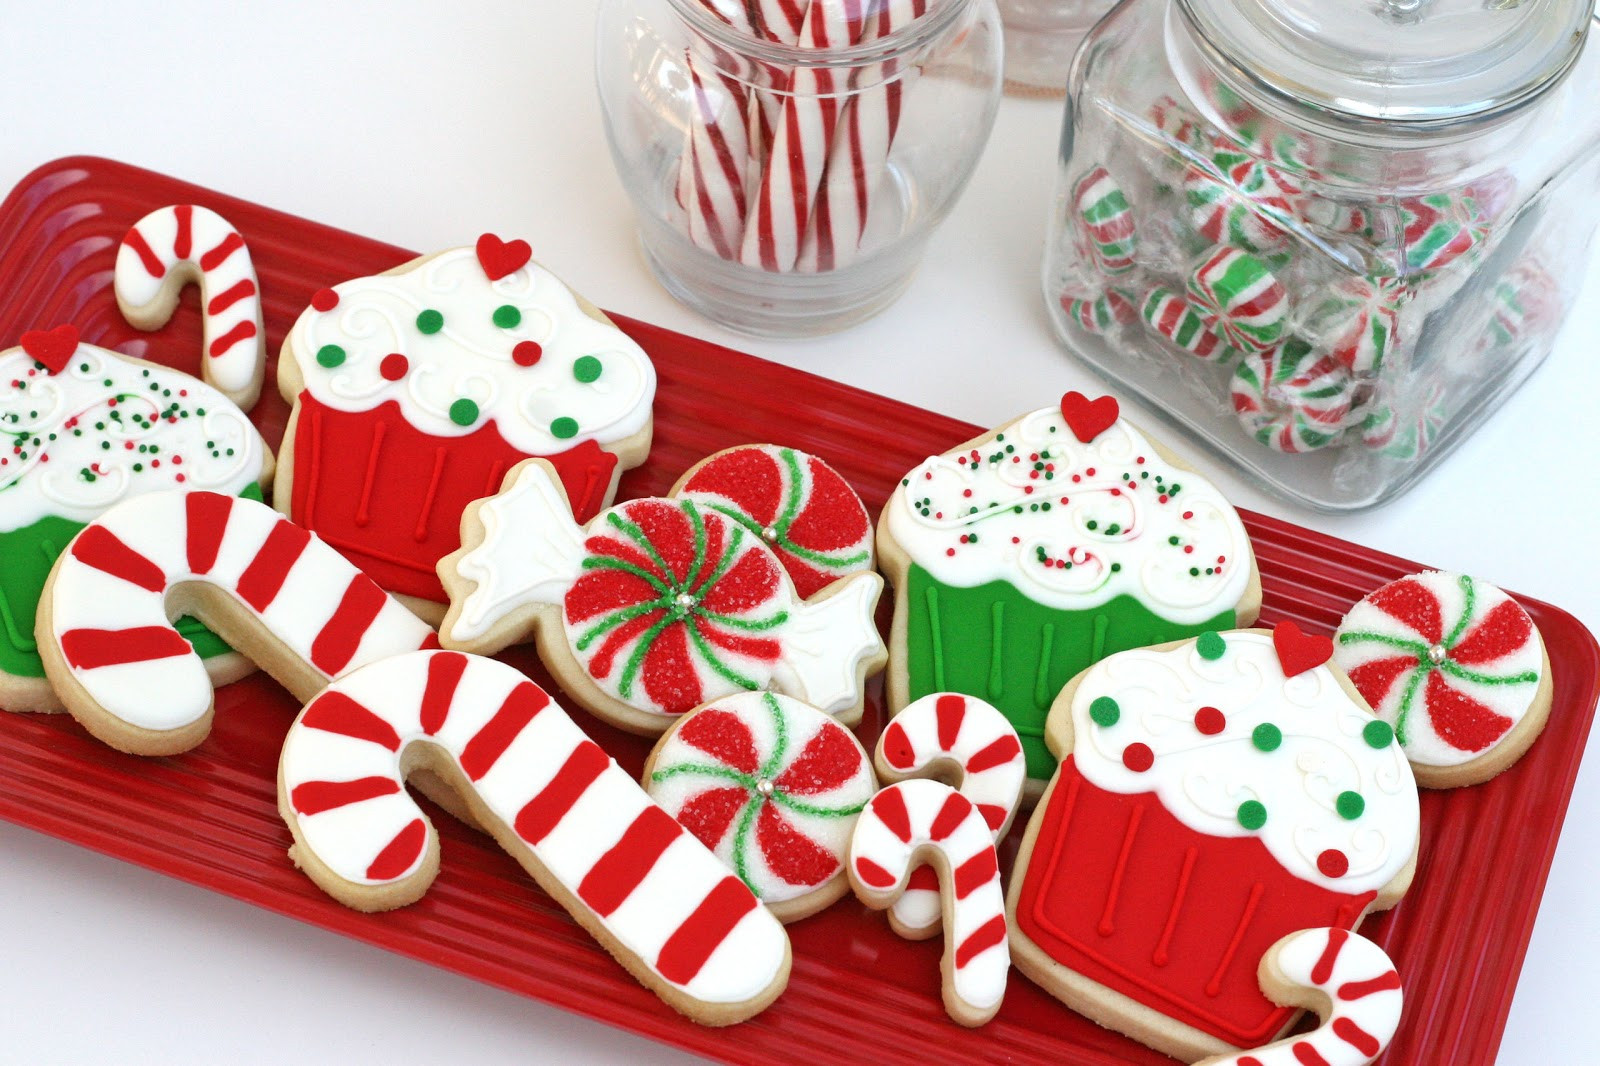 Christmas Cookies And Candies Recipes  Christmas Cookies Galore Glorious Treats